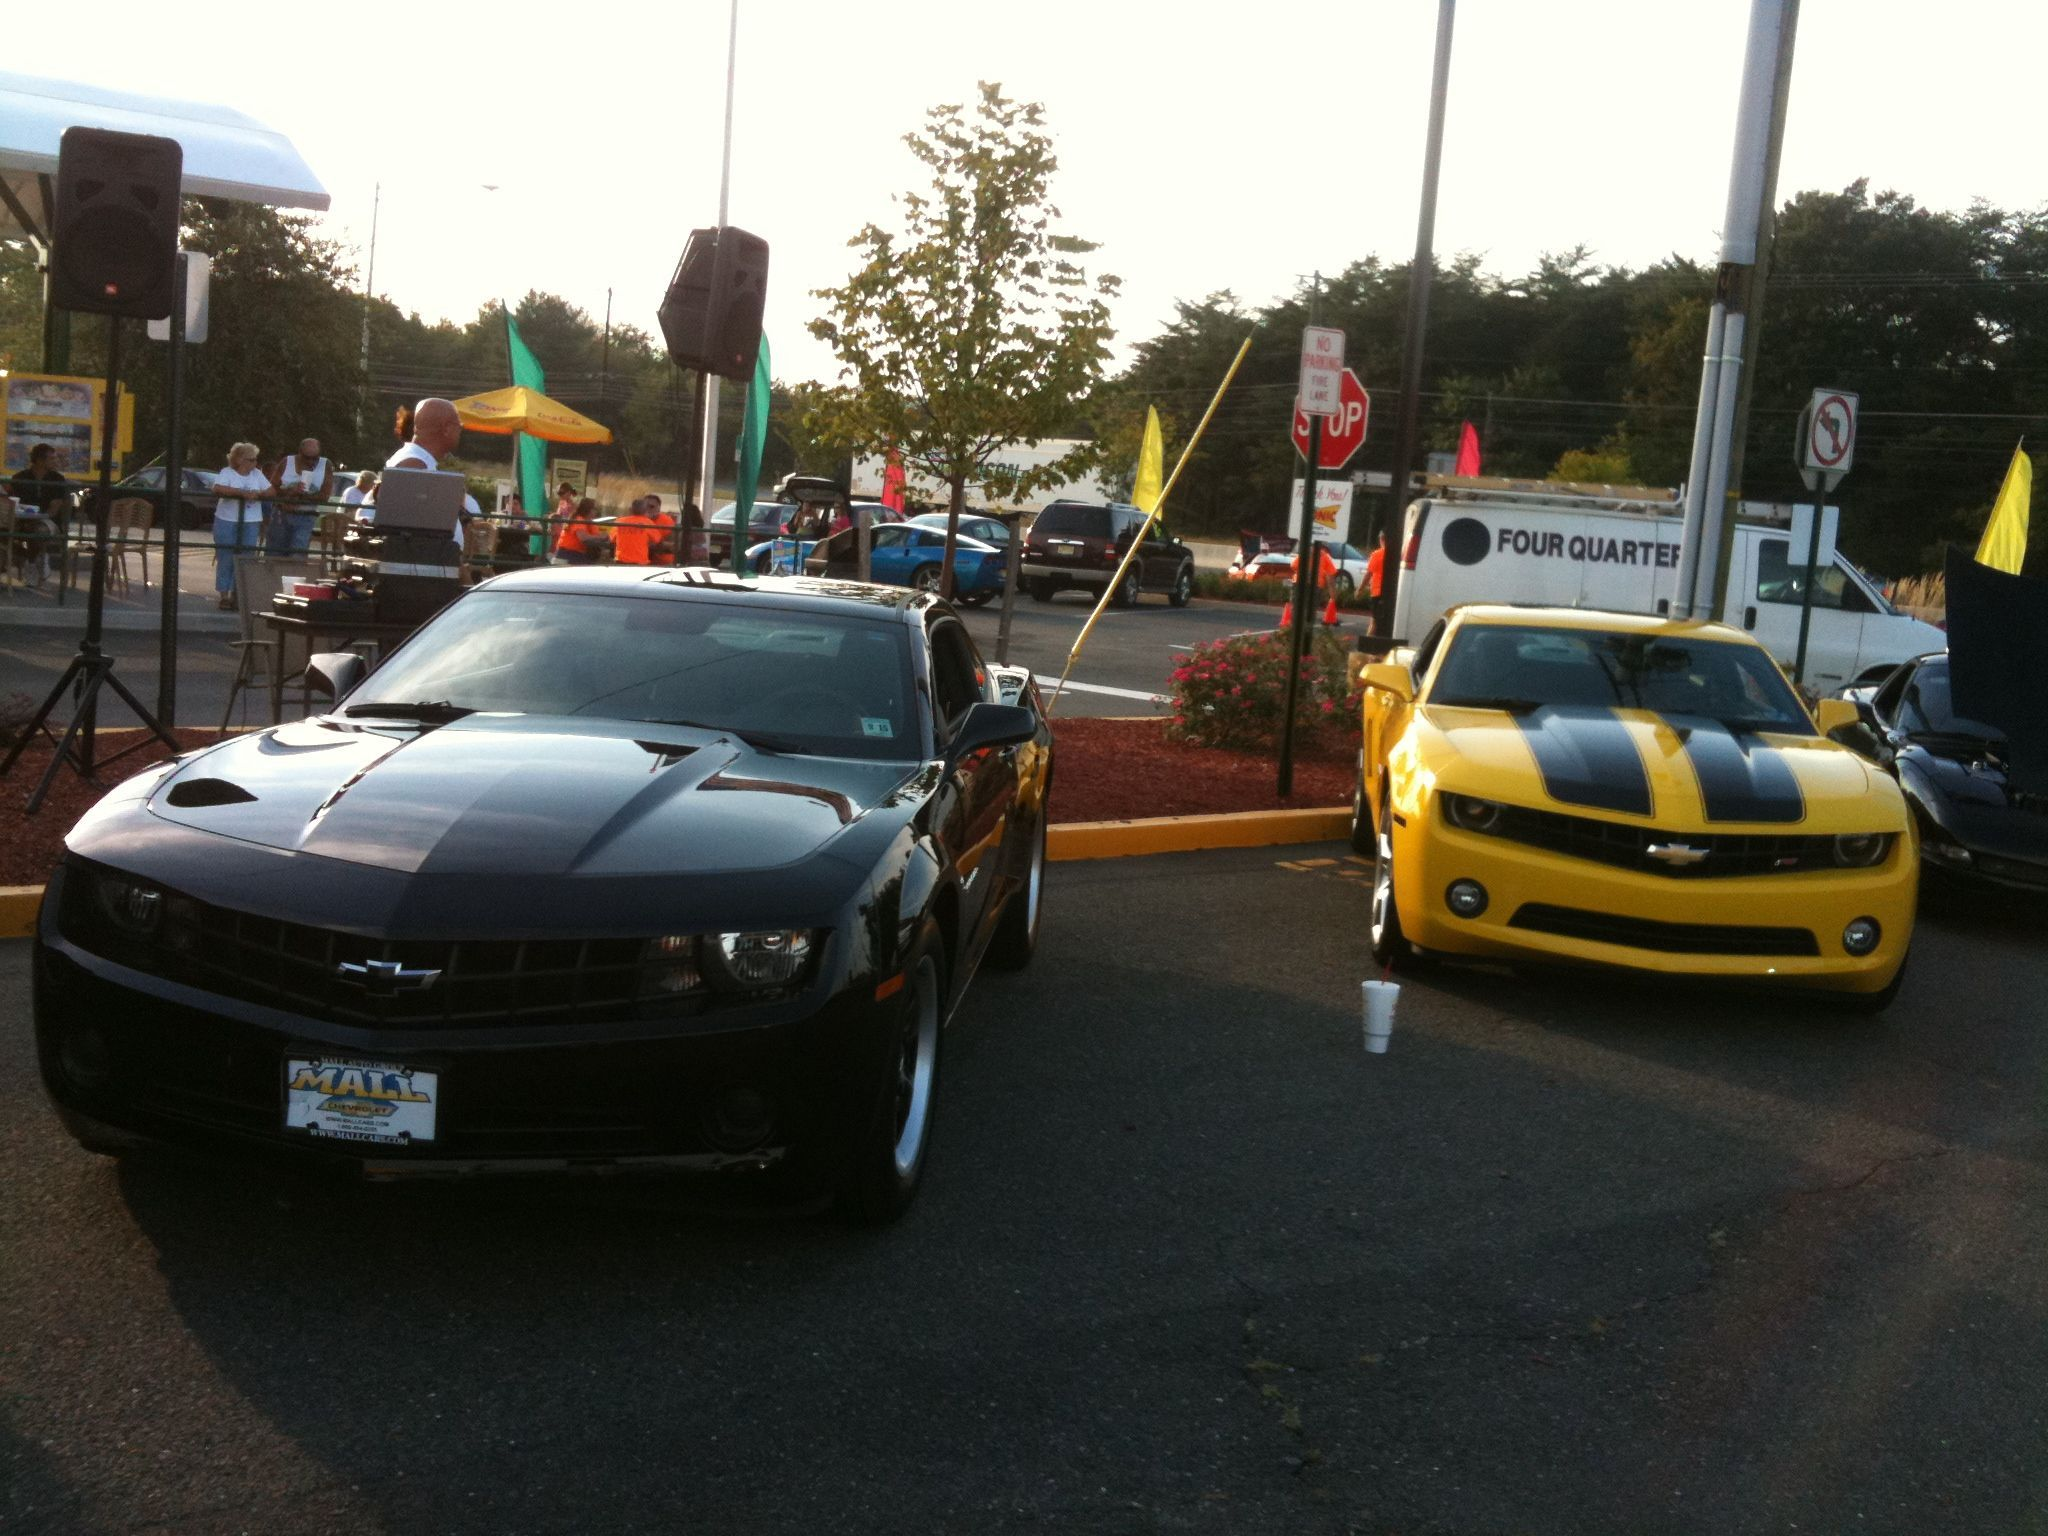 Sepa5 cars and coffee!